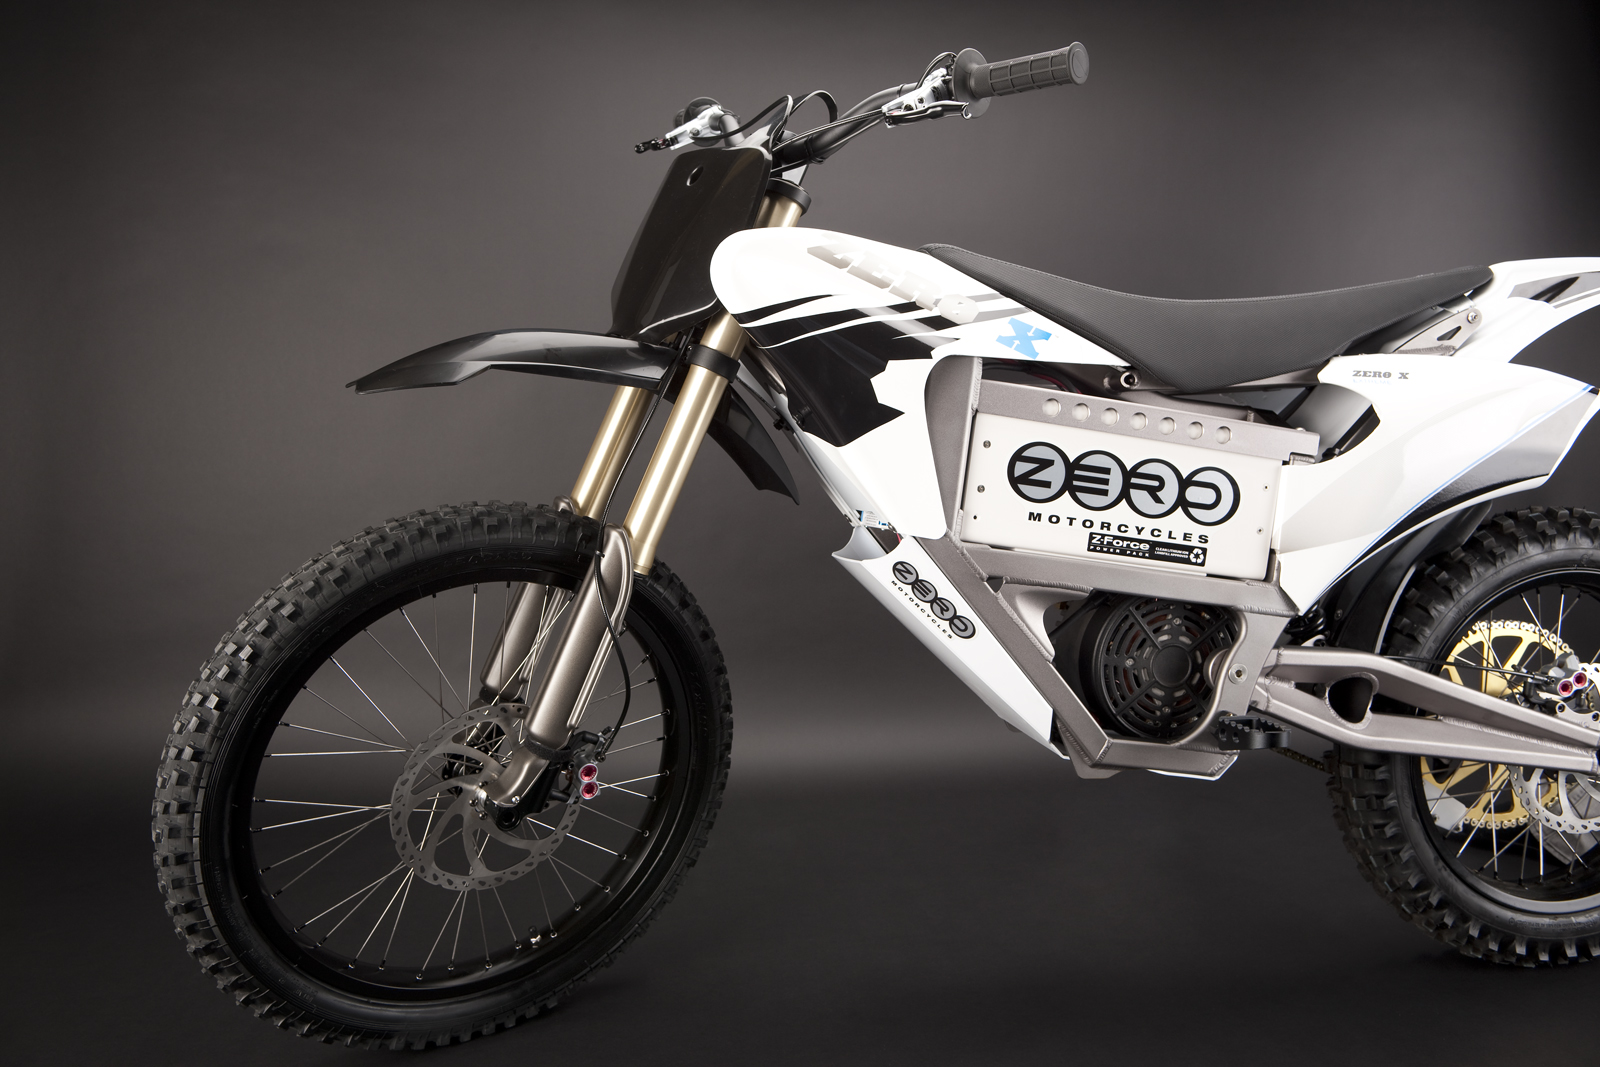 2010 Zero X Electric Motorcycle: Handlebars